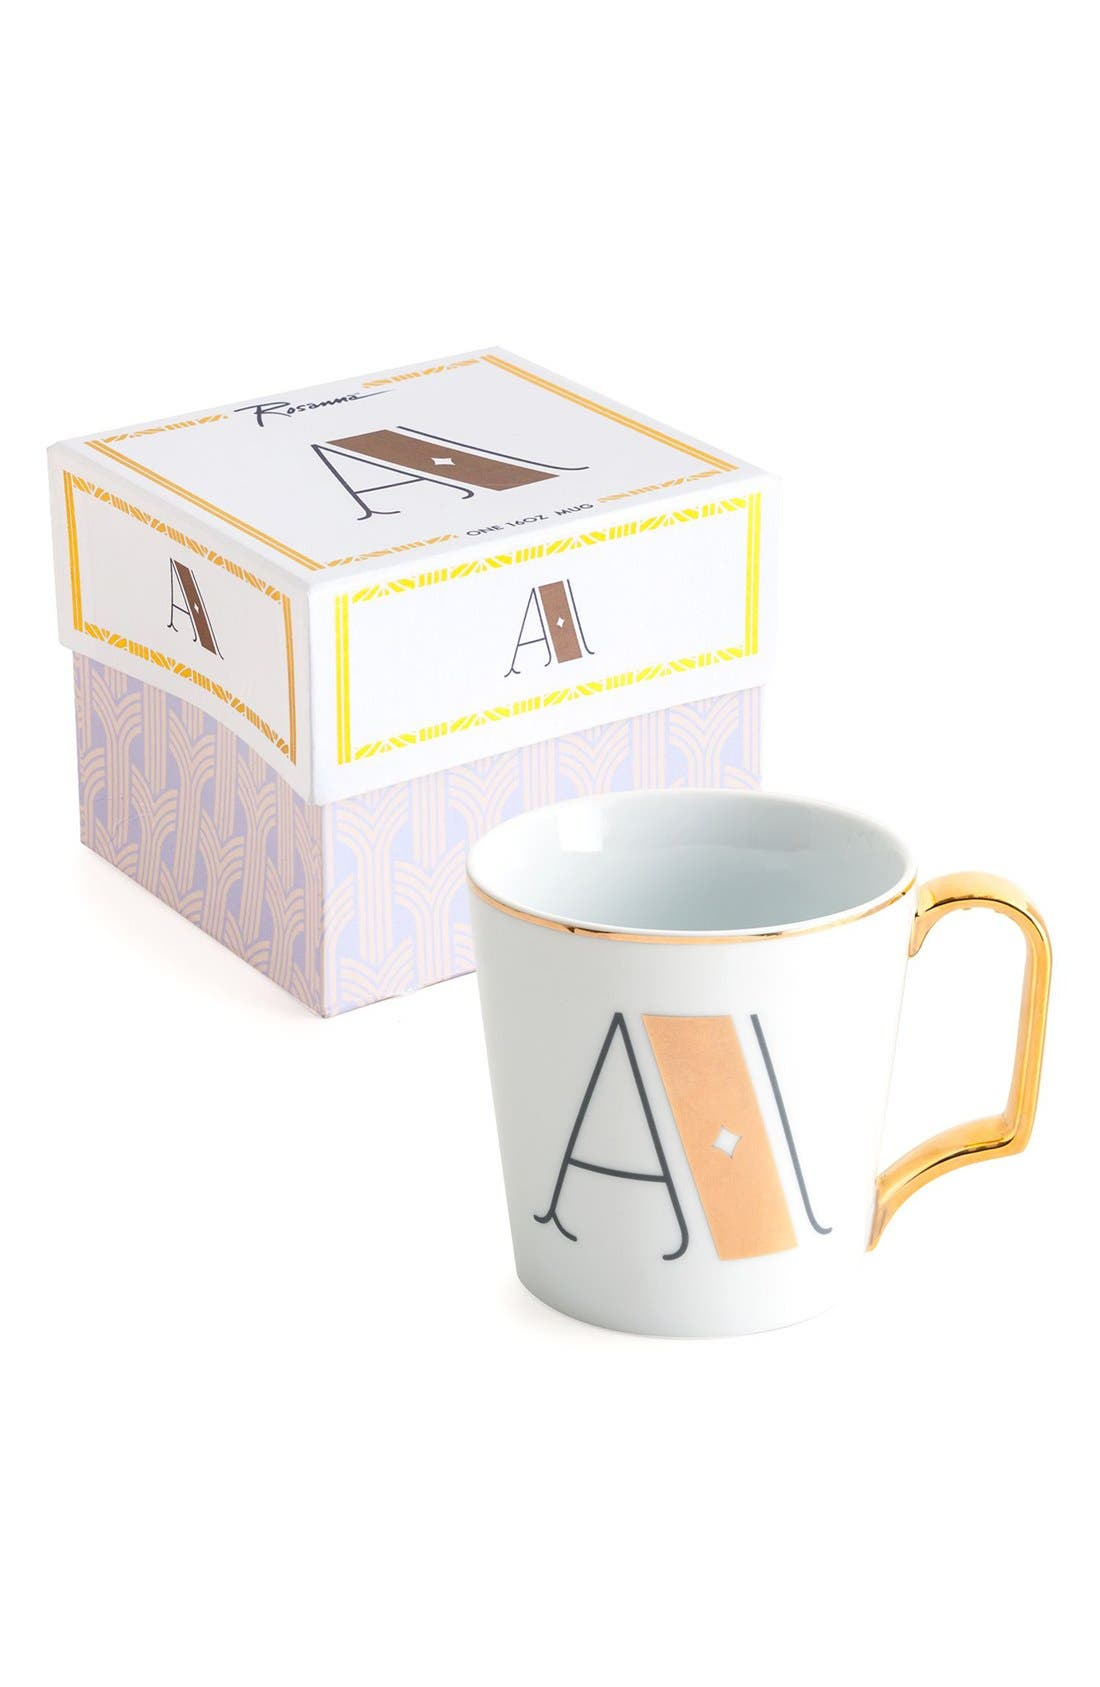 Monogram Porcelain Coffee Mug,                             Main thumbnail 2, color,